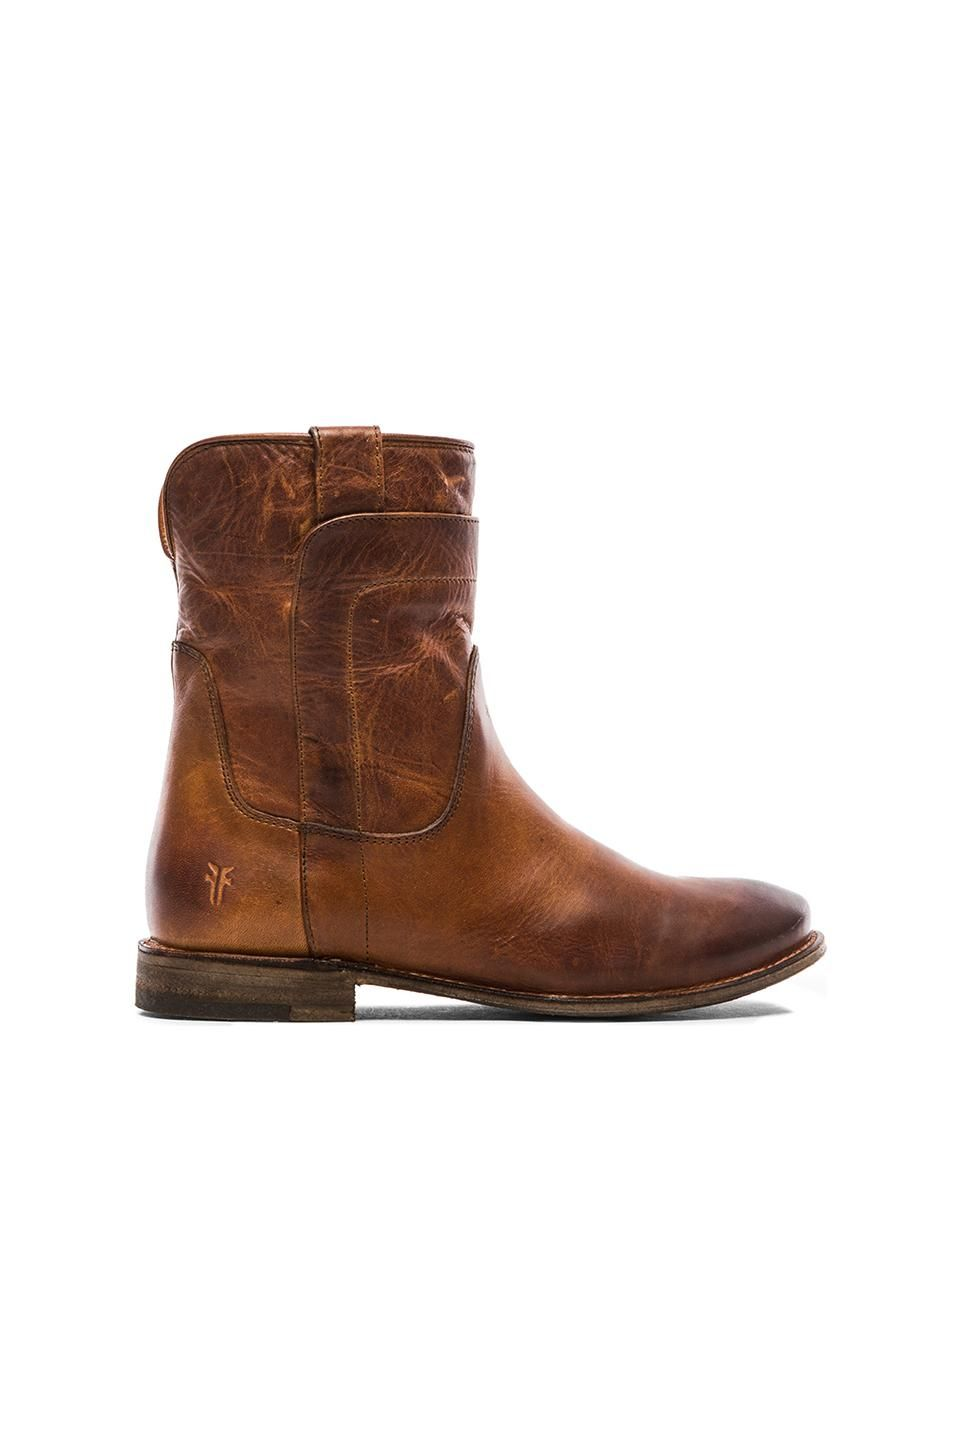 Shop for Frye Paige Short Boot in Cognac at REVOLVE. Free day shipping and  returns, 30 day price match guarantee.